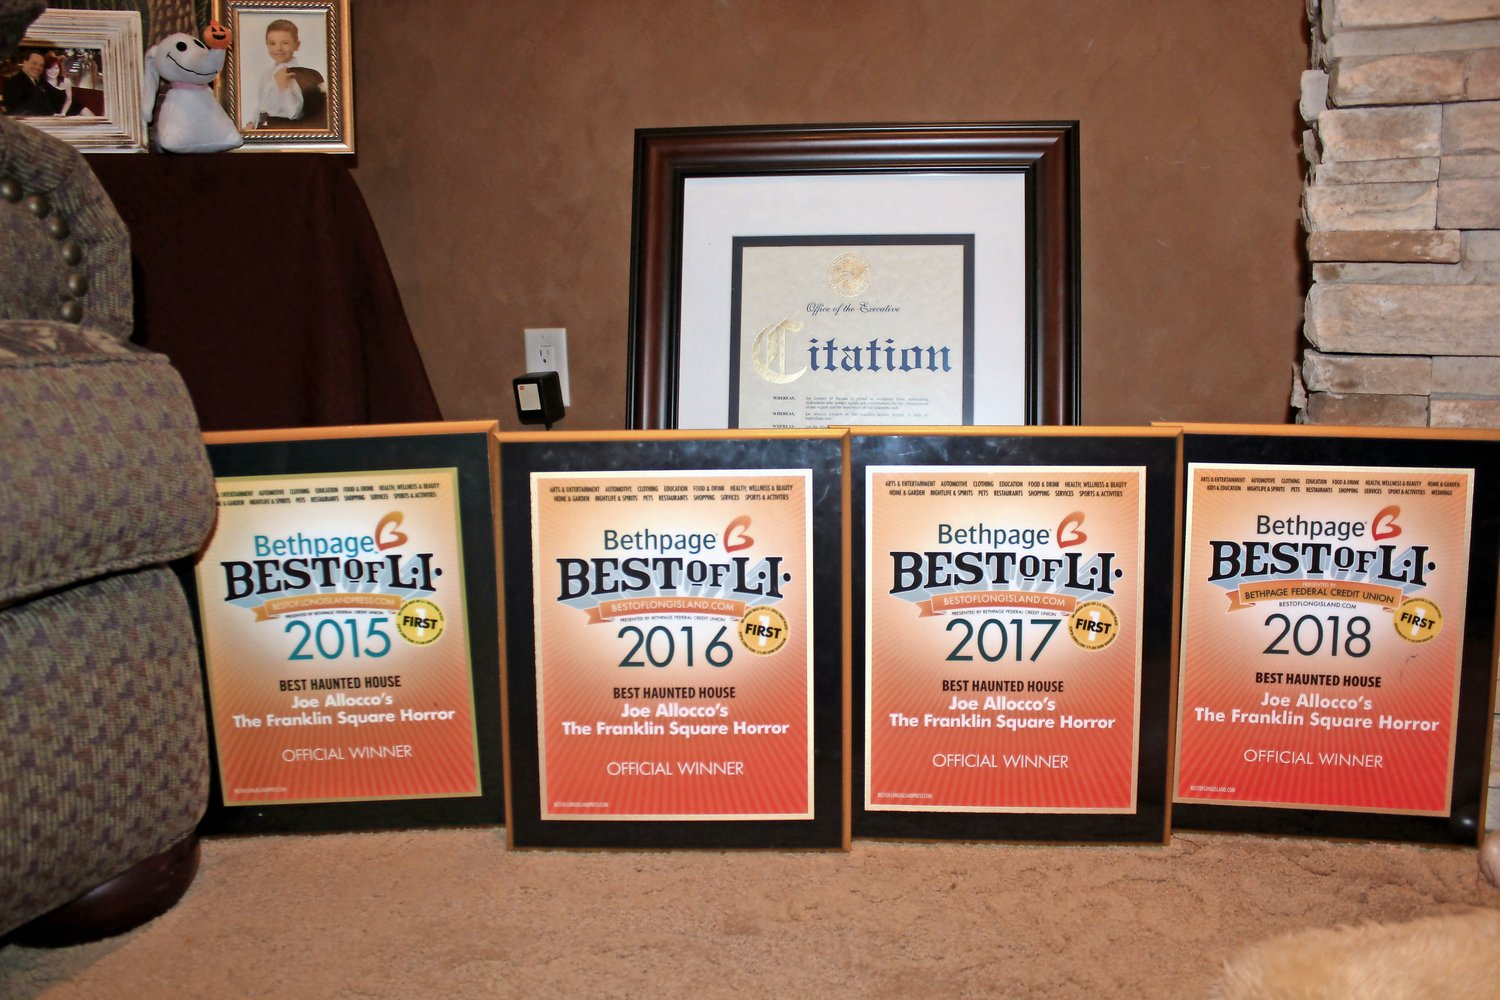 Allocco has won the Bethpage Best of Long Island Haunted House Award for the past four years.